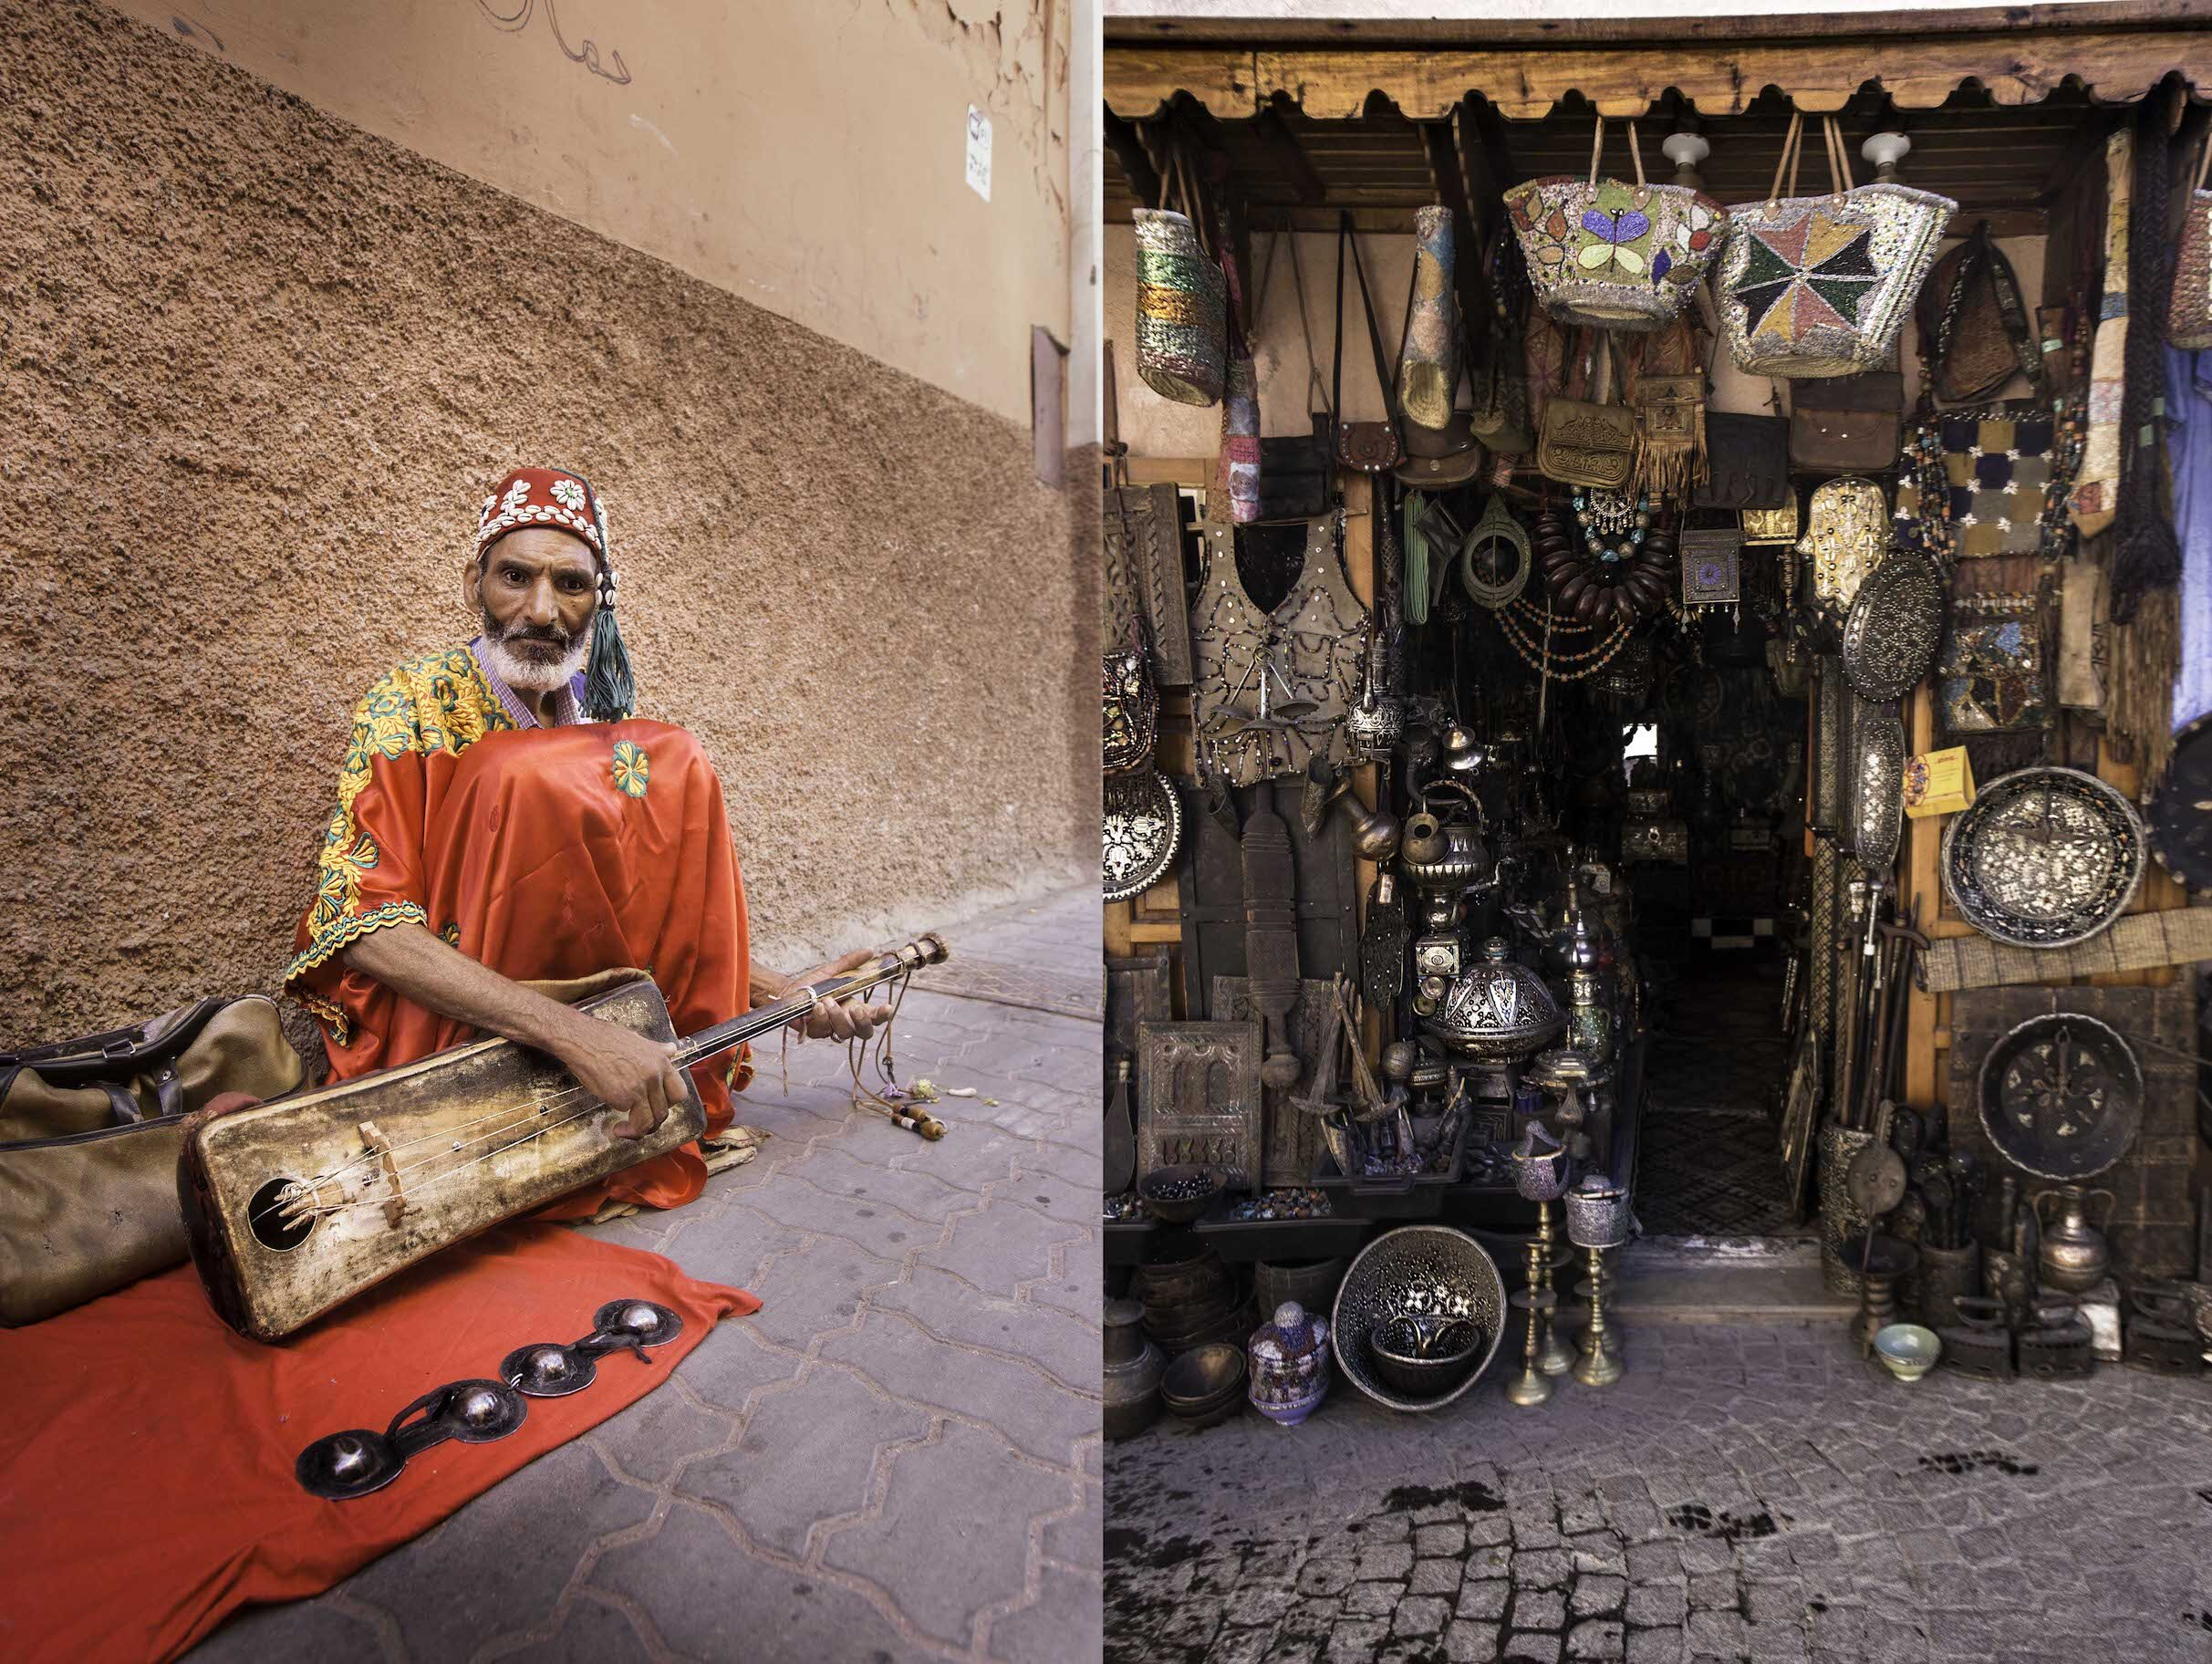 A local playing his Sintir and Krakeb Bells below and one of many local lovely shop in the Old Town Medina.